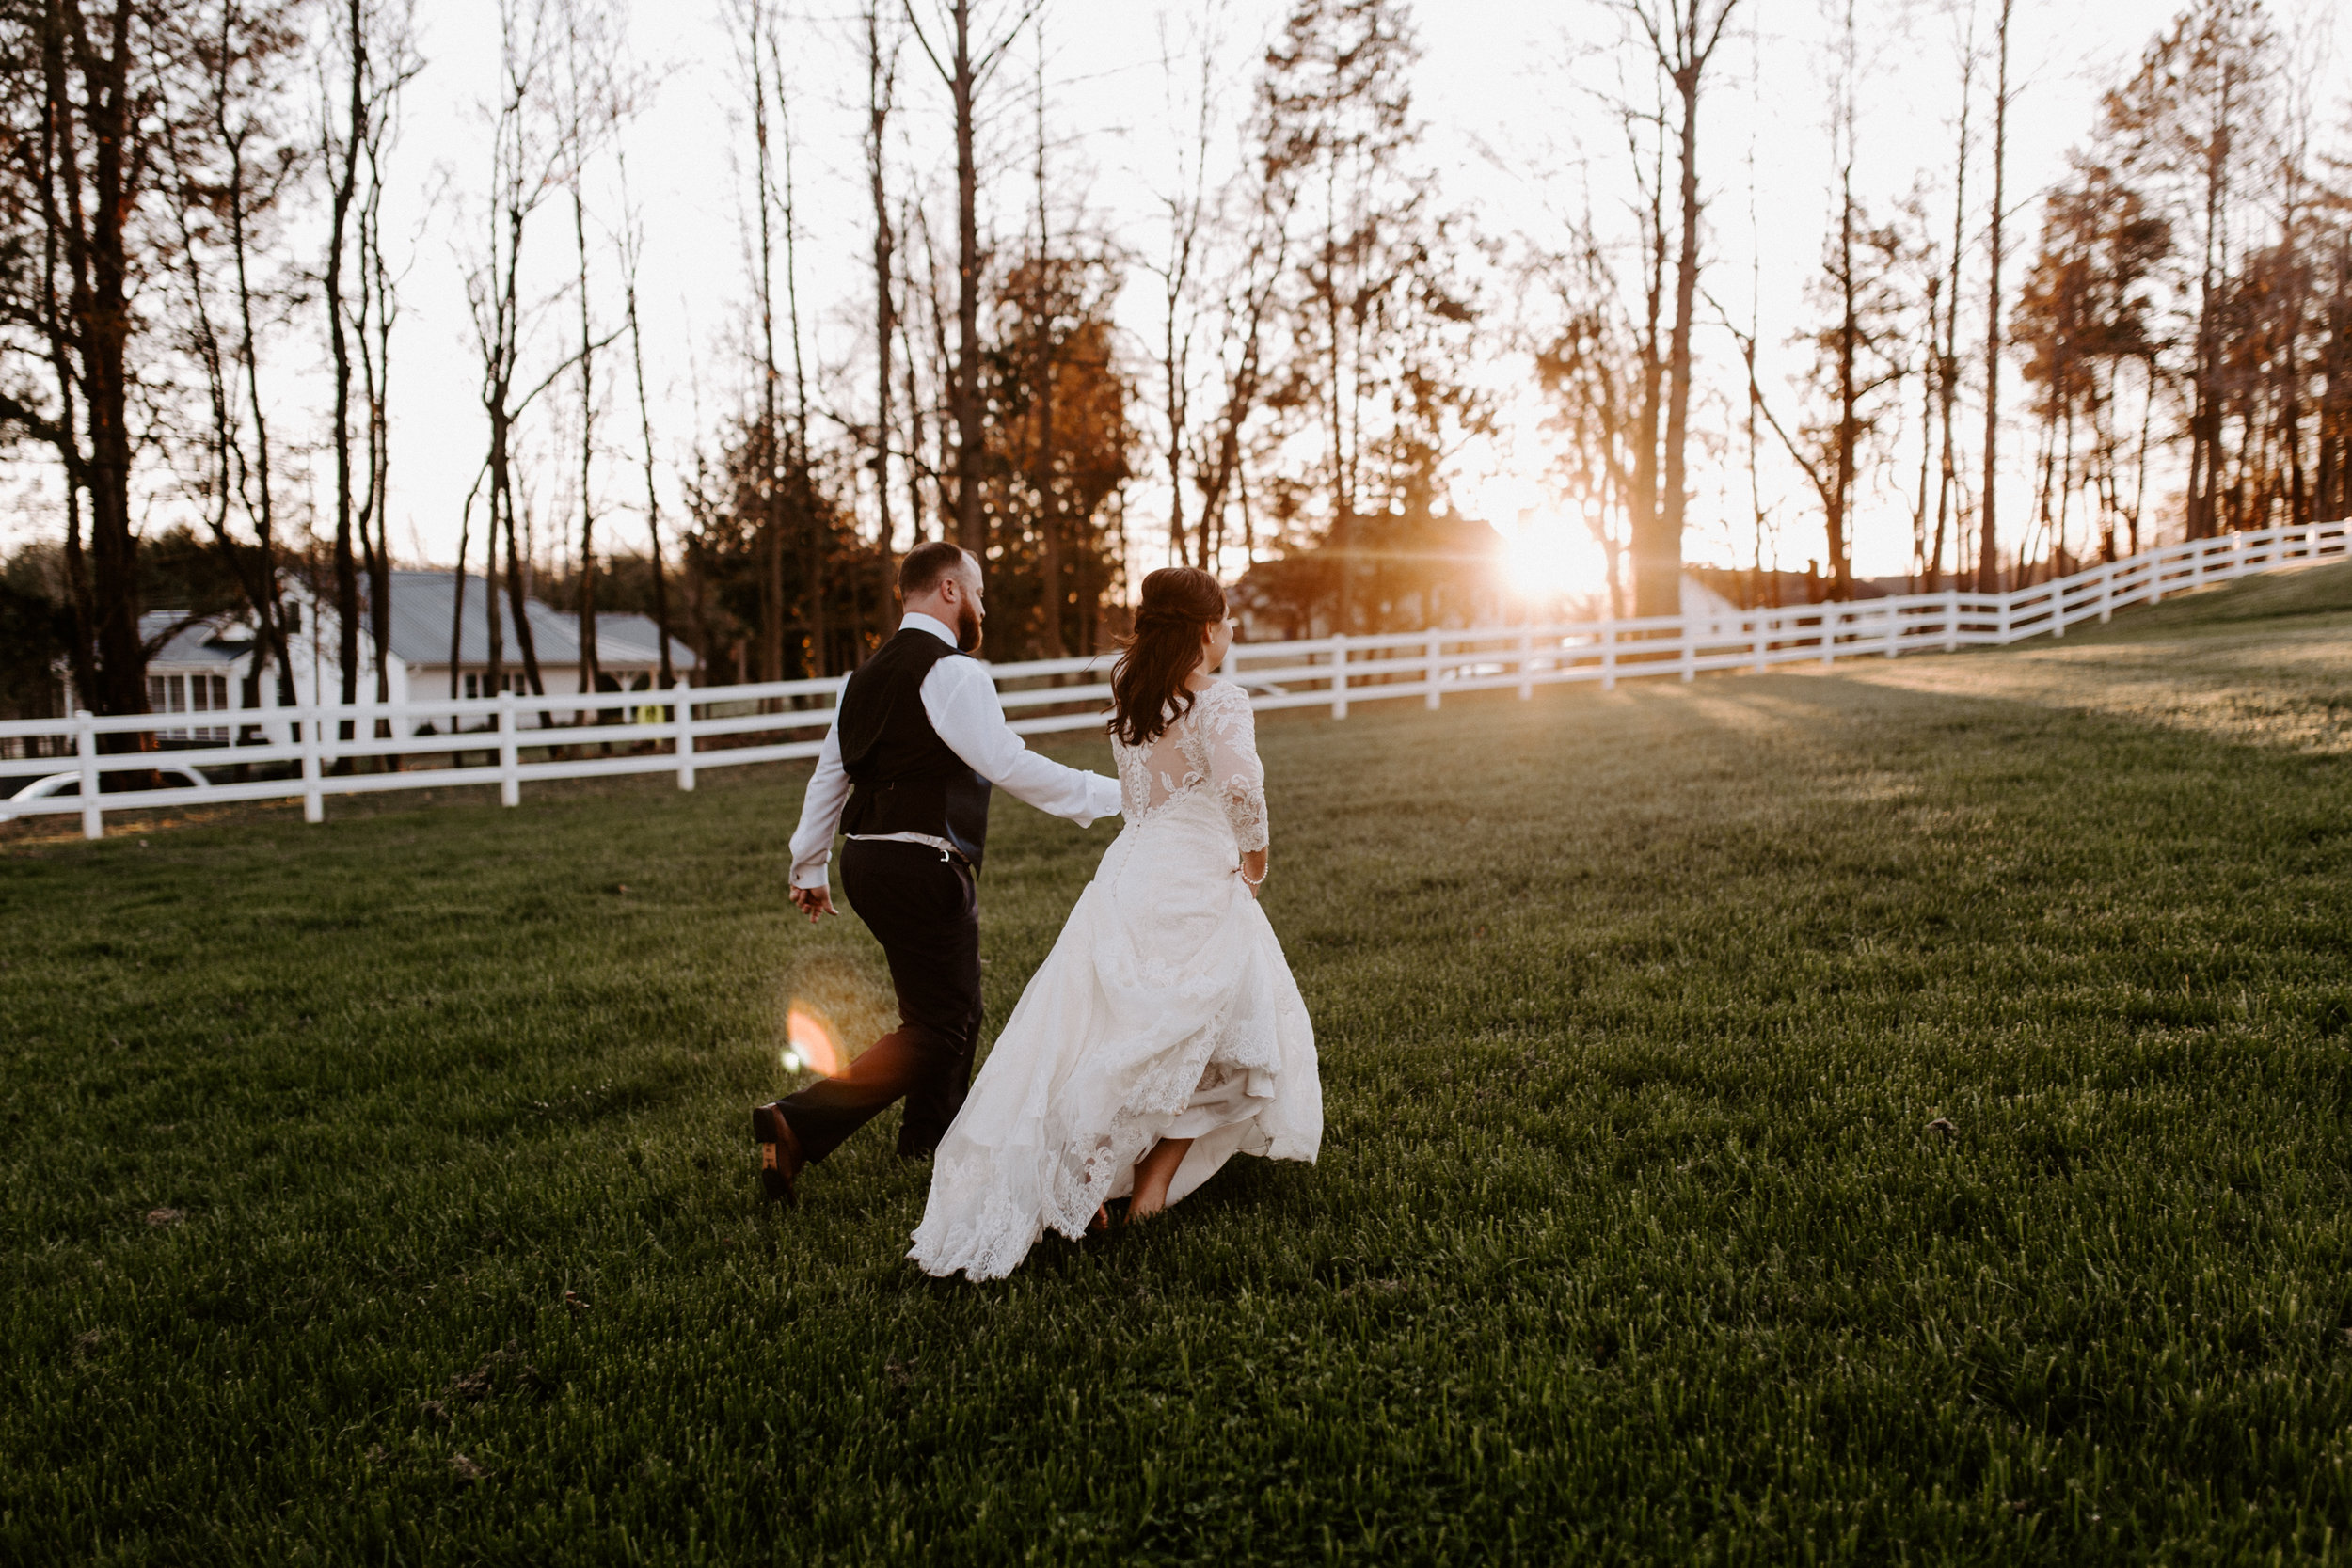 What To Look For In Your Wedding Venue To Get The Most Out Of Your Photos